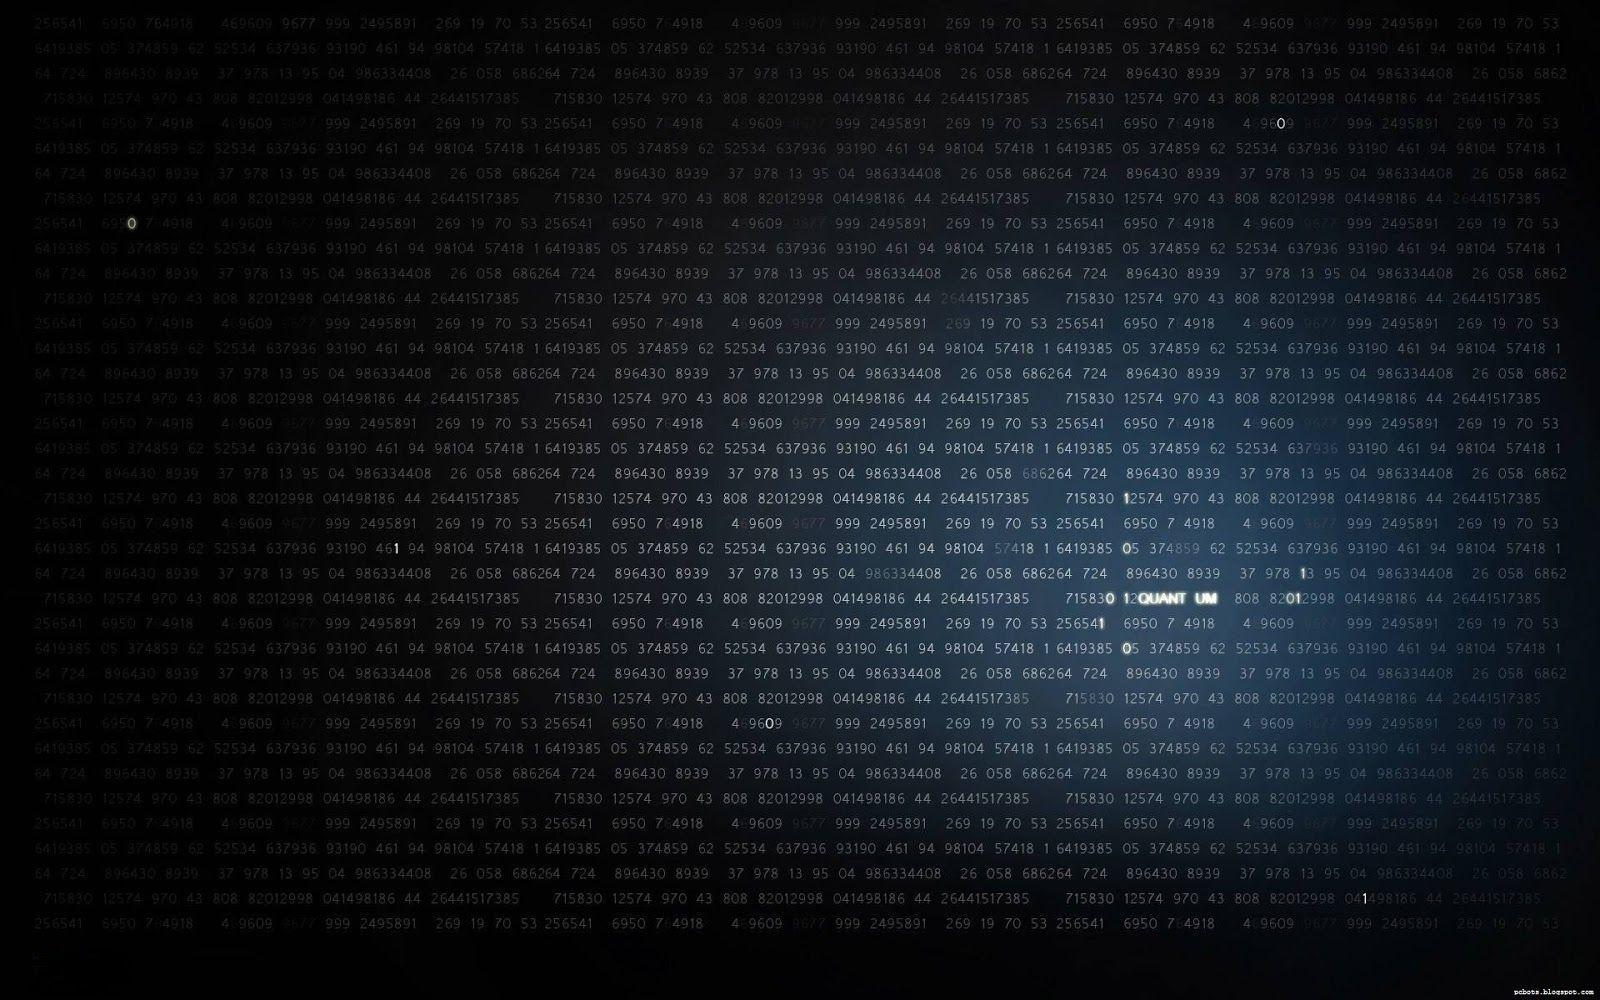 hackers wallpaper wallpapers de - photo #10